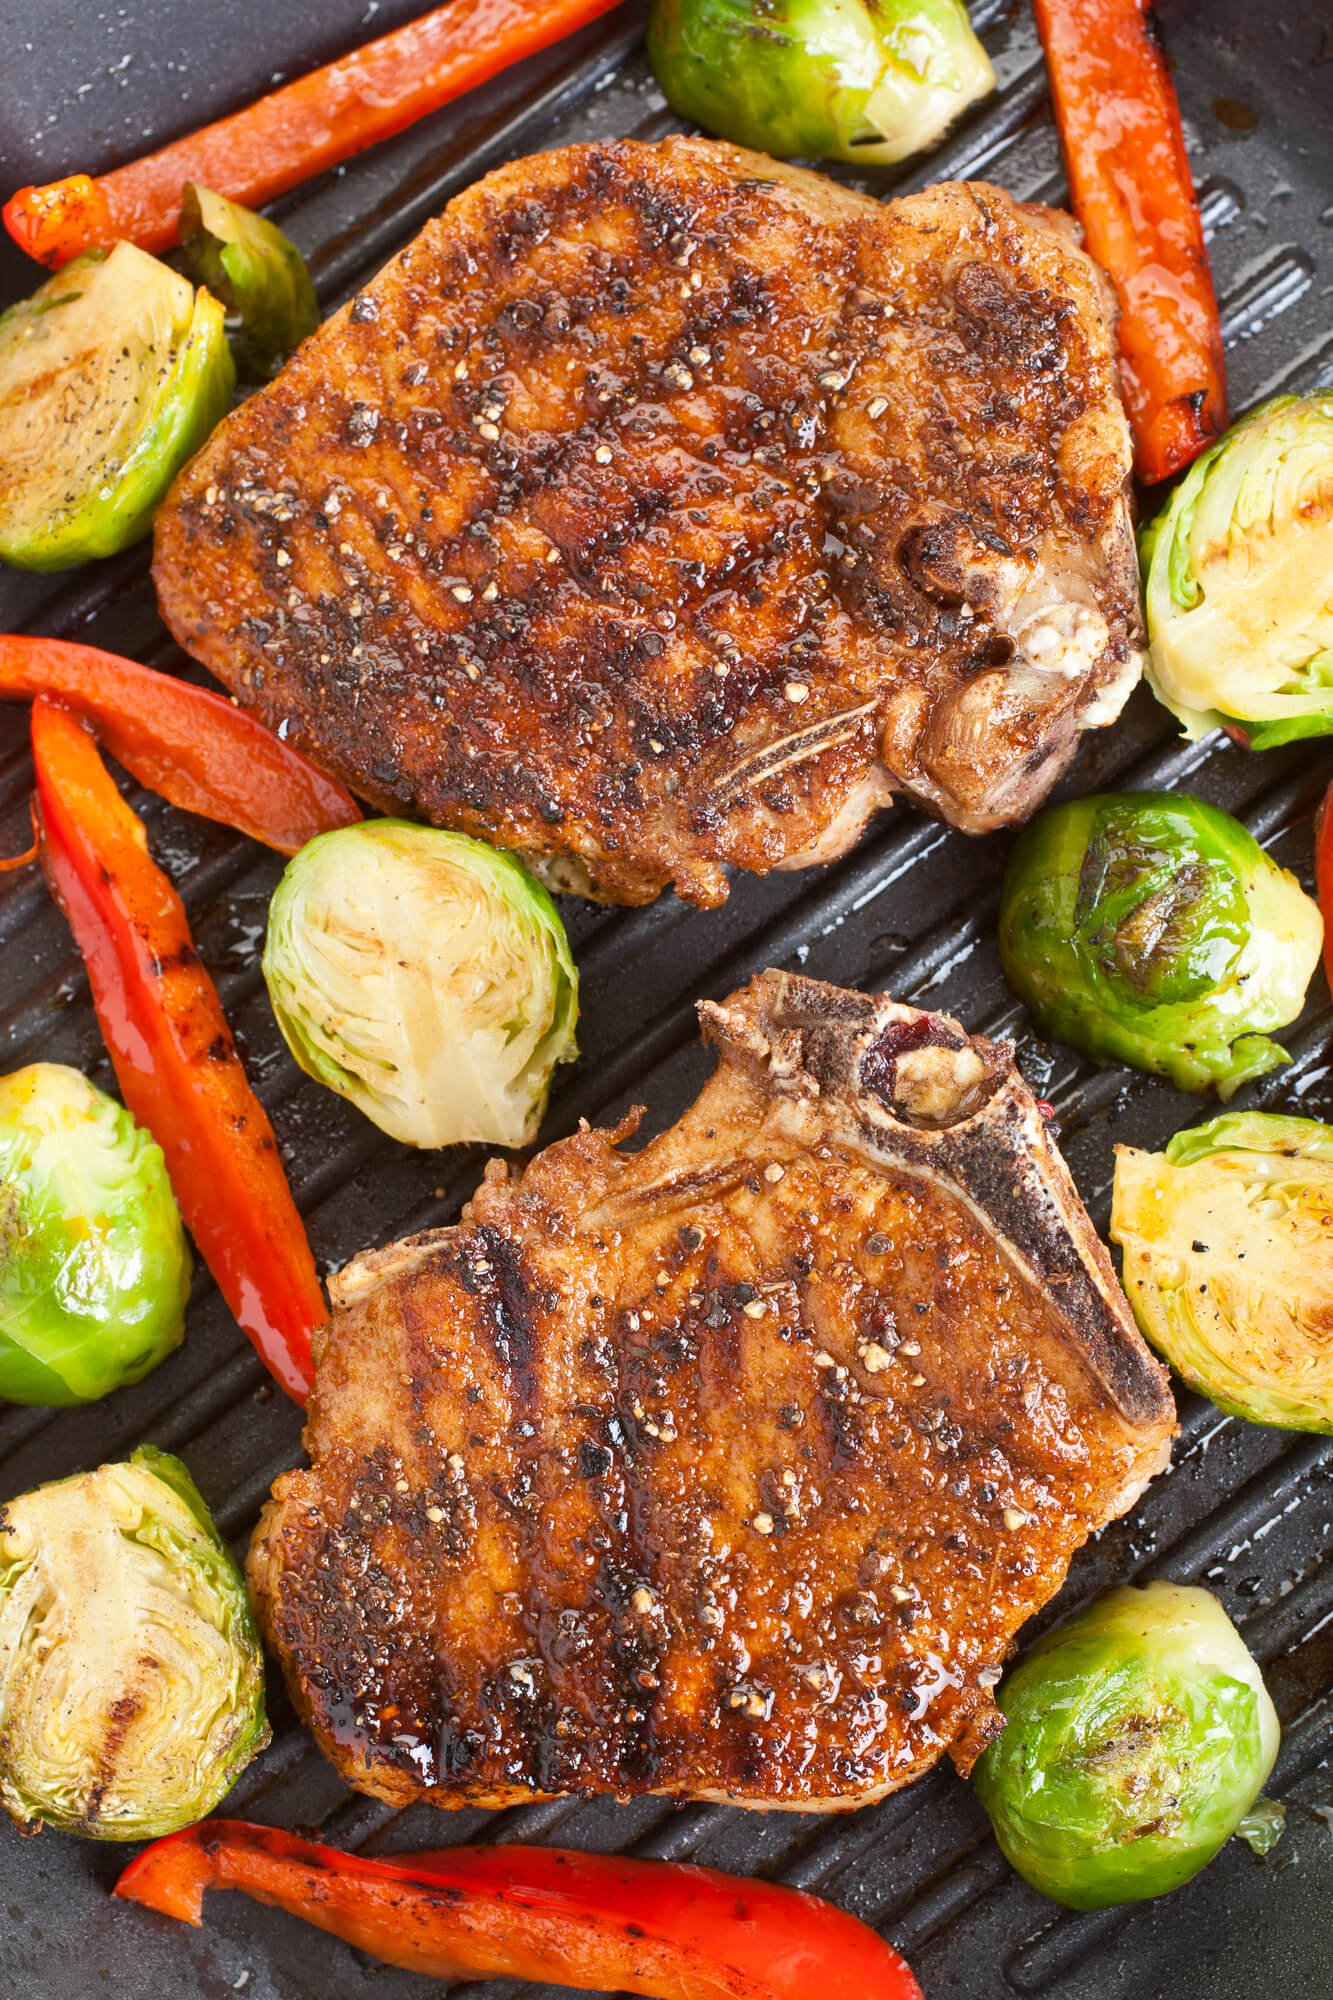 Grilled Pork Chops with peppers and Brusslels sprouts on a grill pan.